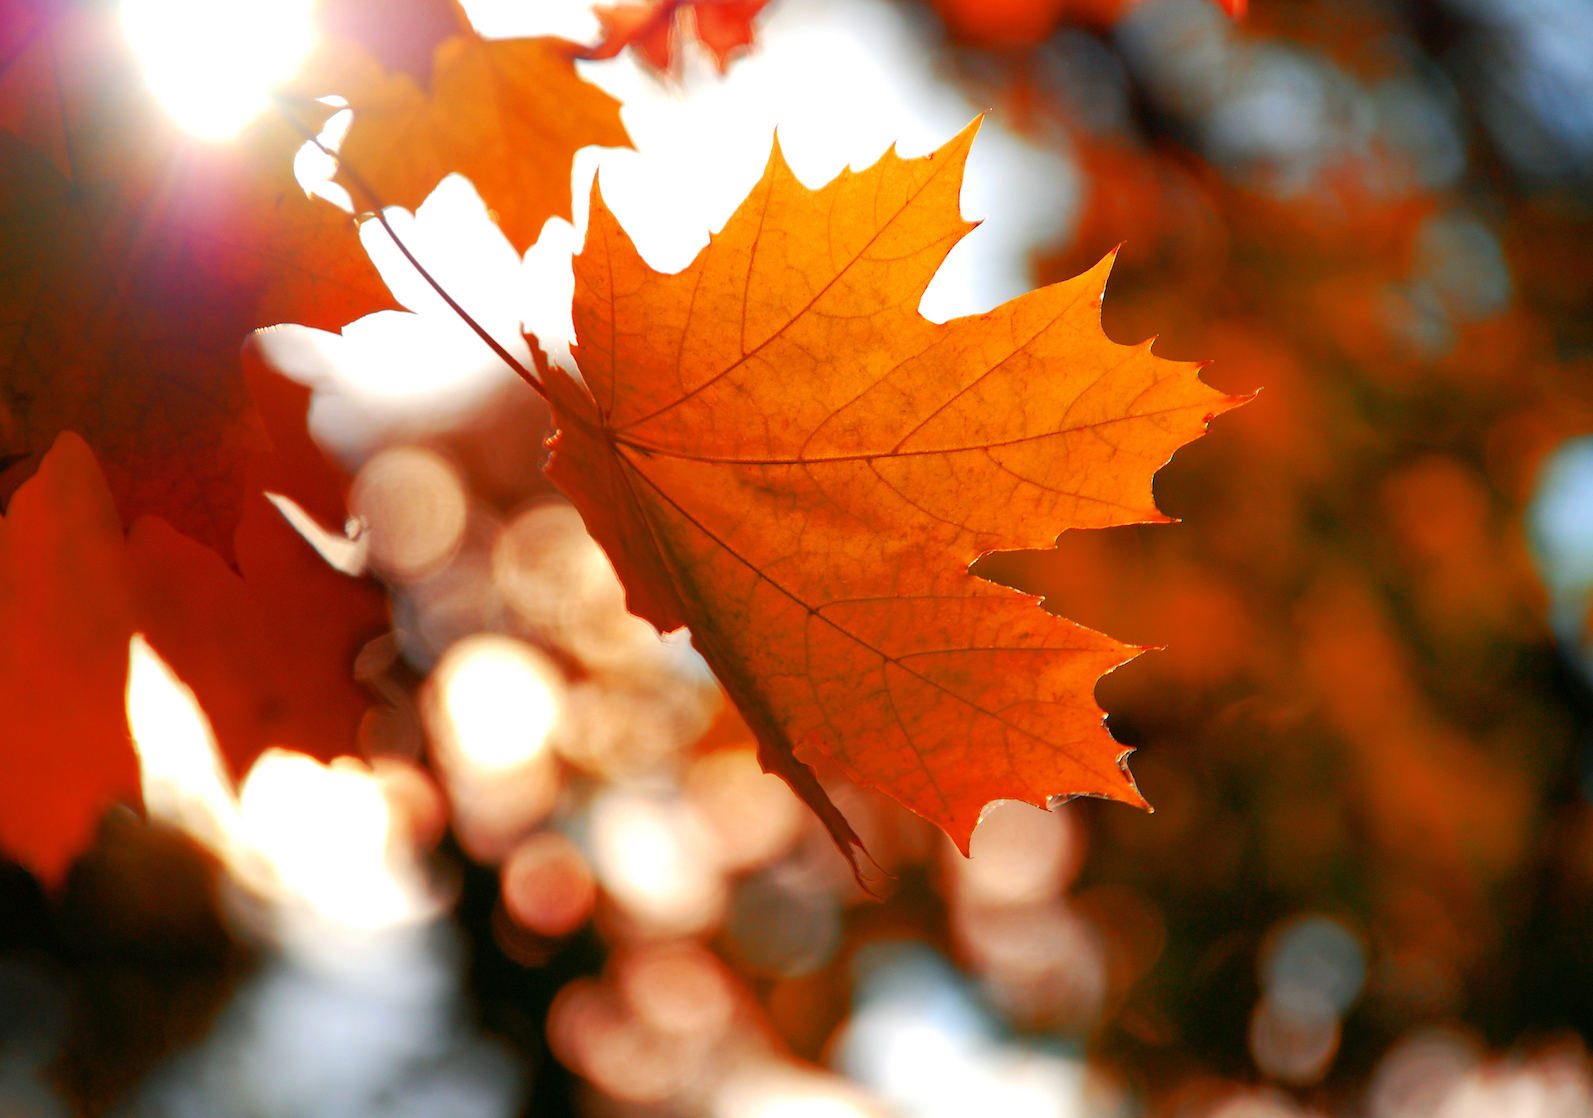 Scientists have identified an extract from red maple and sugar maple leaves that may help to prevent wrinkles.